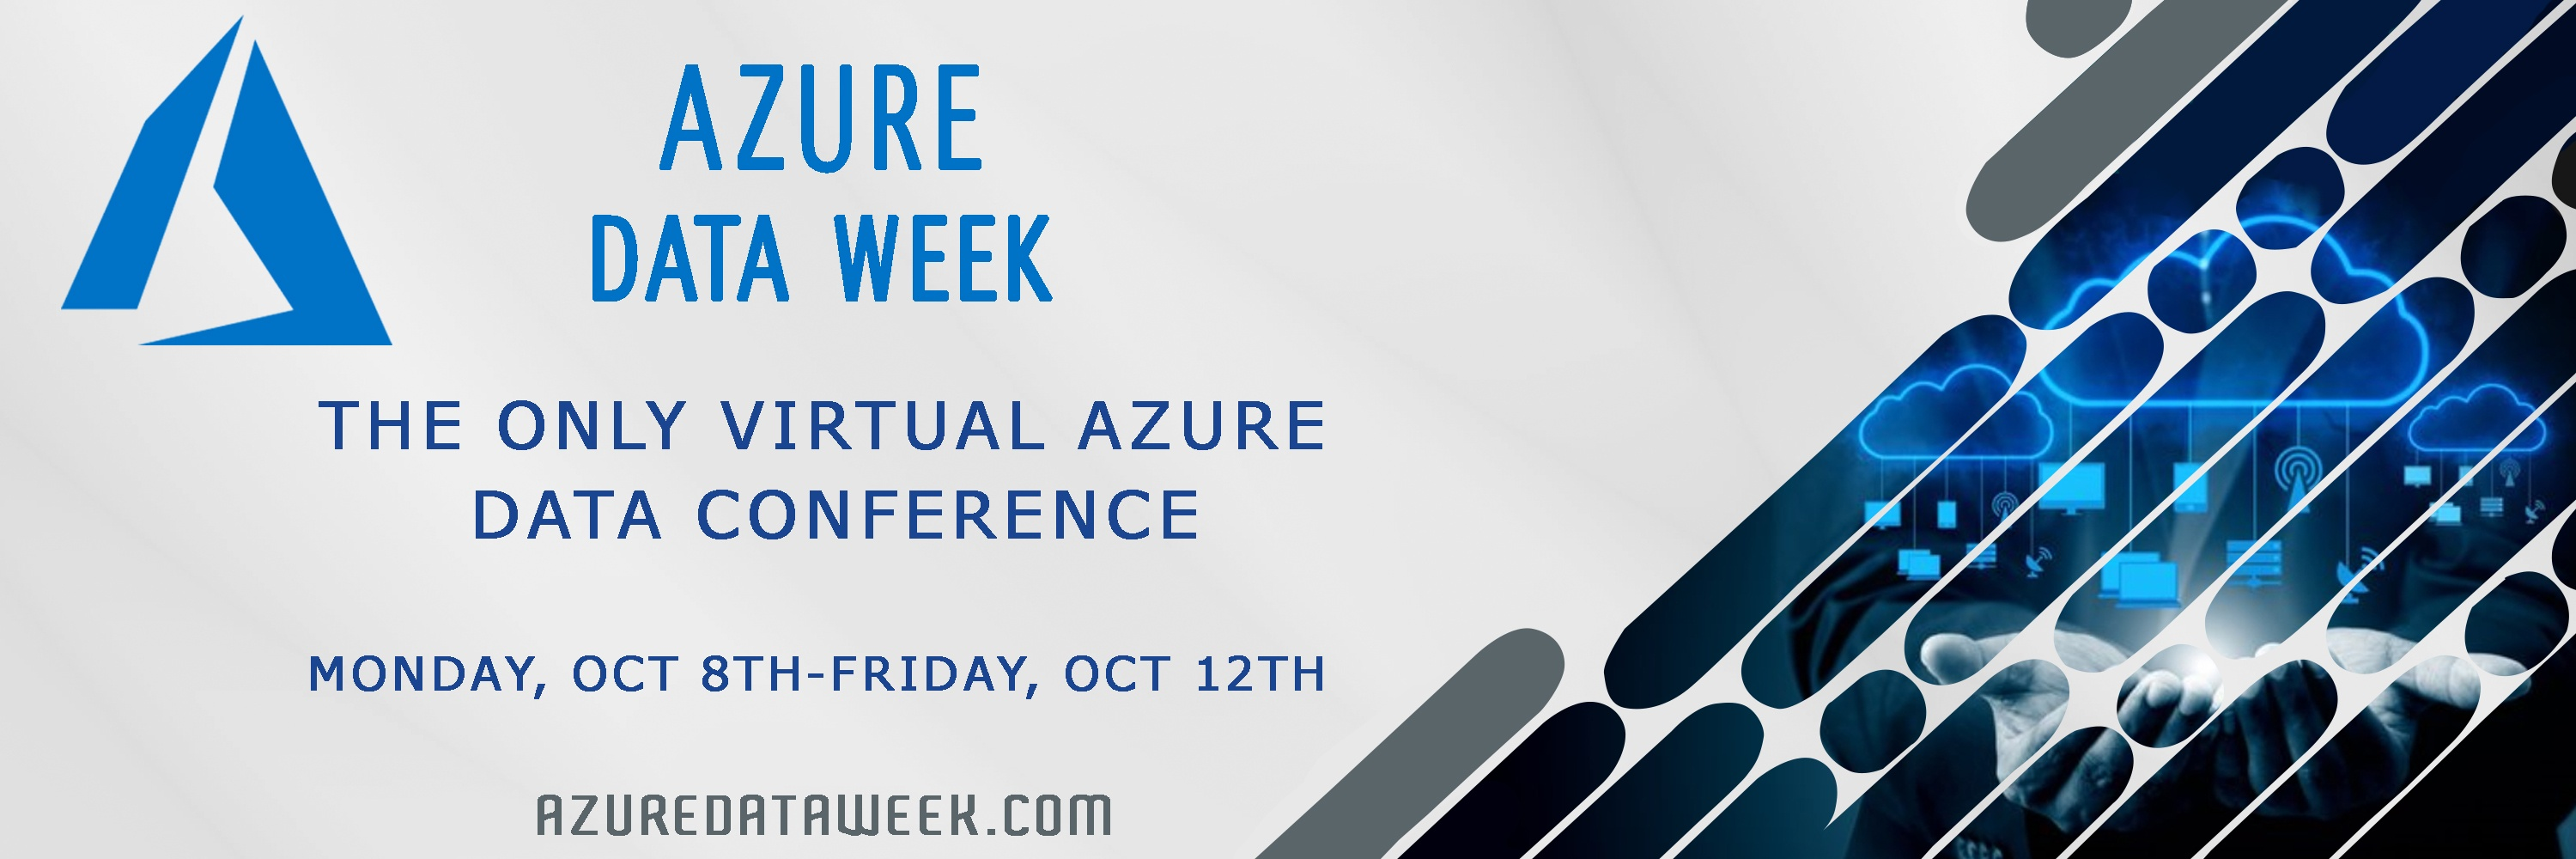 Azure Data Week - Modern Data Warehouse Design Patterns